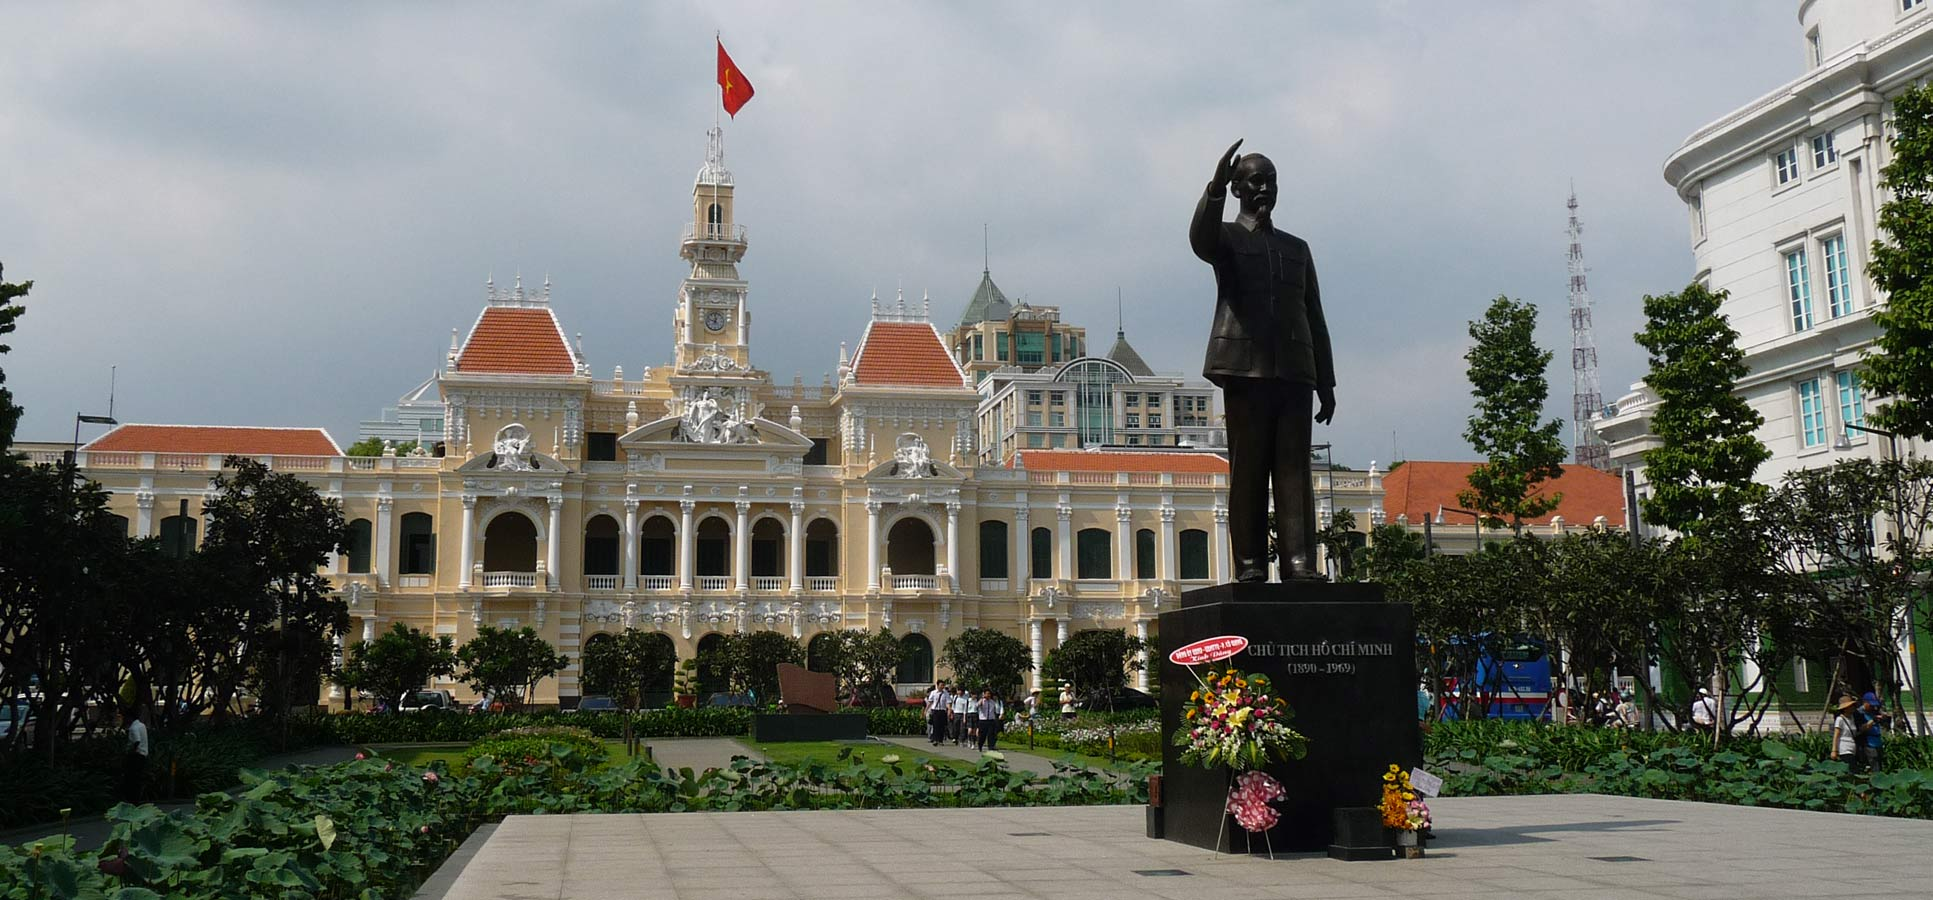 Vietnam travel reviews, Saigon, Ho Chi Minh